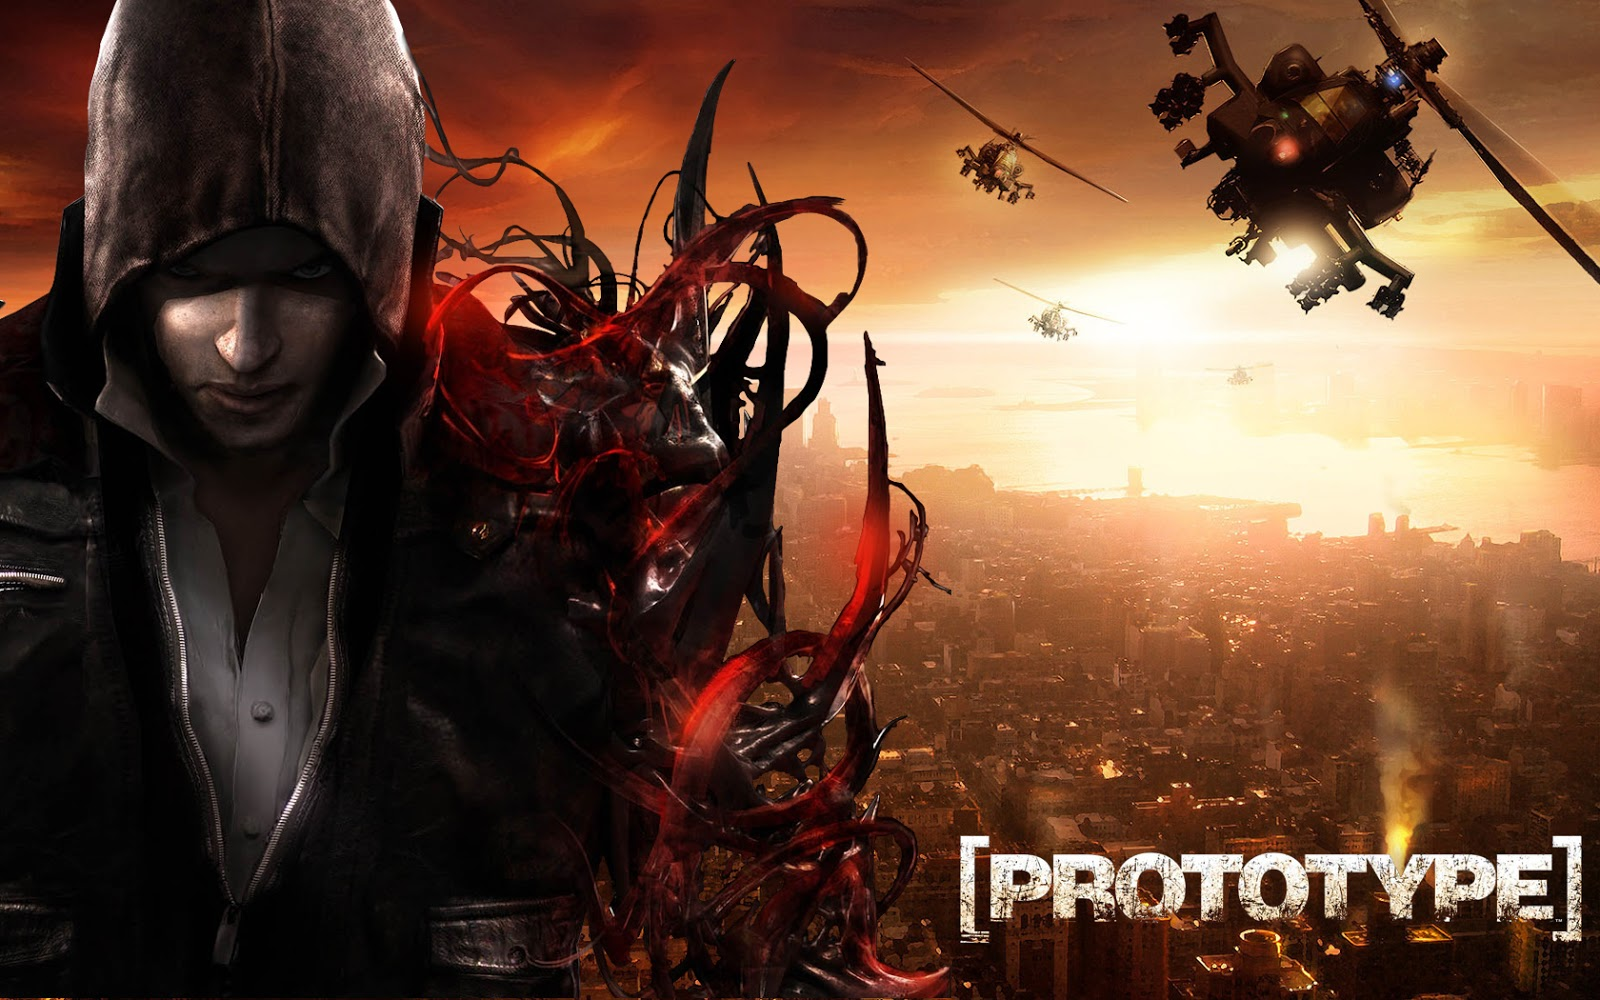 Prototype 2 Wallpapers Hd: Prototype Full Pc Game Highly Compressed (1.8GB) Direct